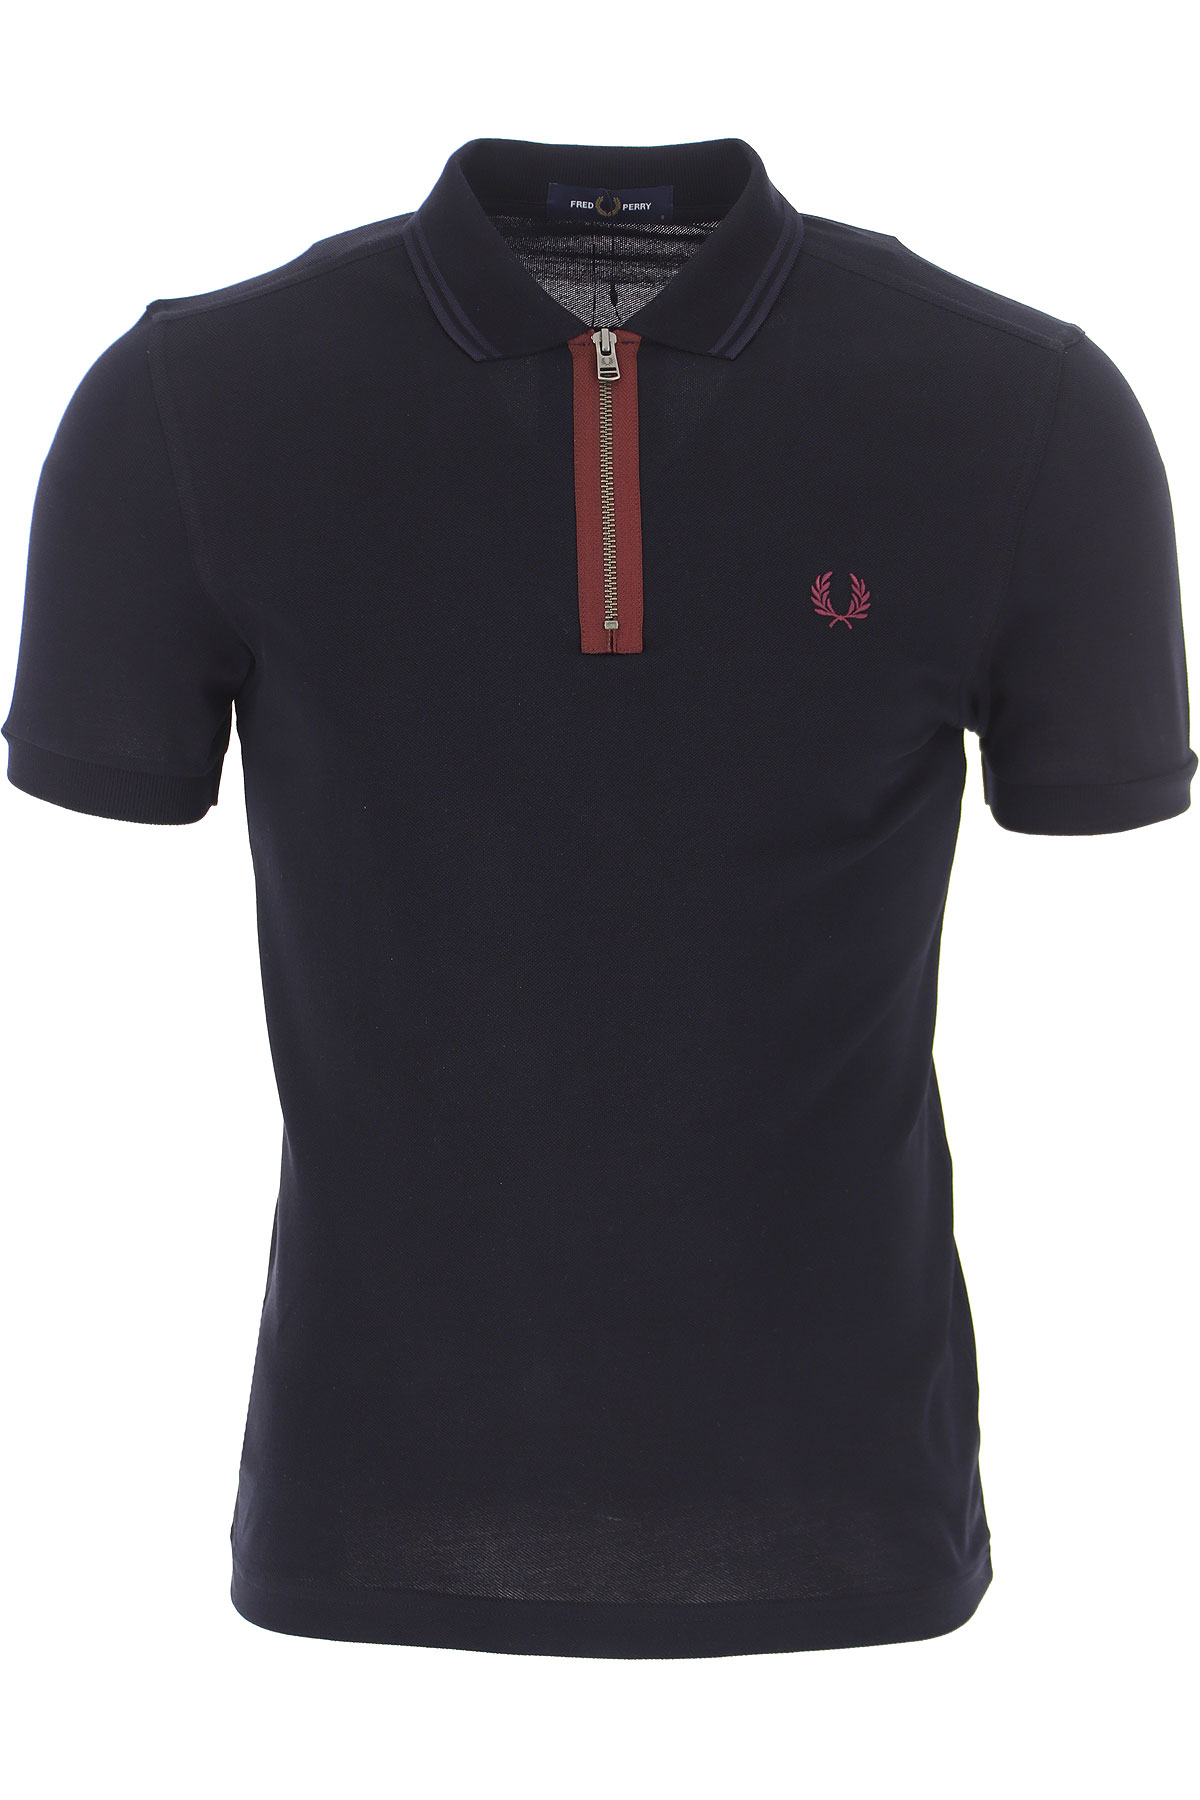 Fred Perry Fred Perry Polo Shirt for Men On Sale, Blue Navy, Cotton, 2021, L M S XL from Raffaello Network | Accuweather